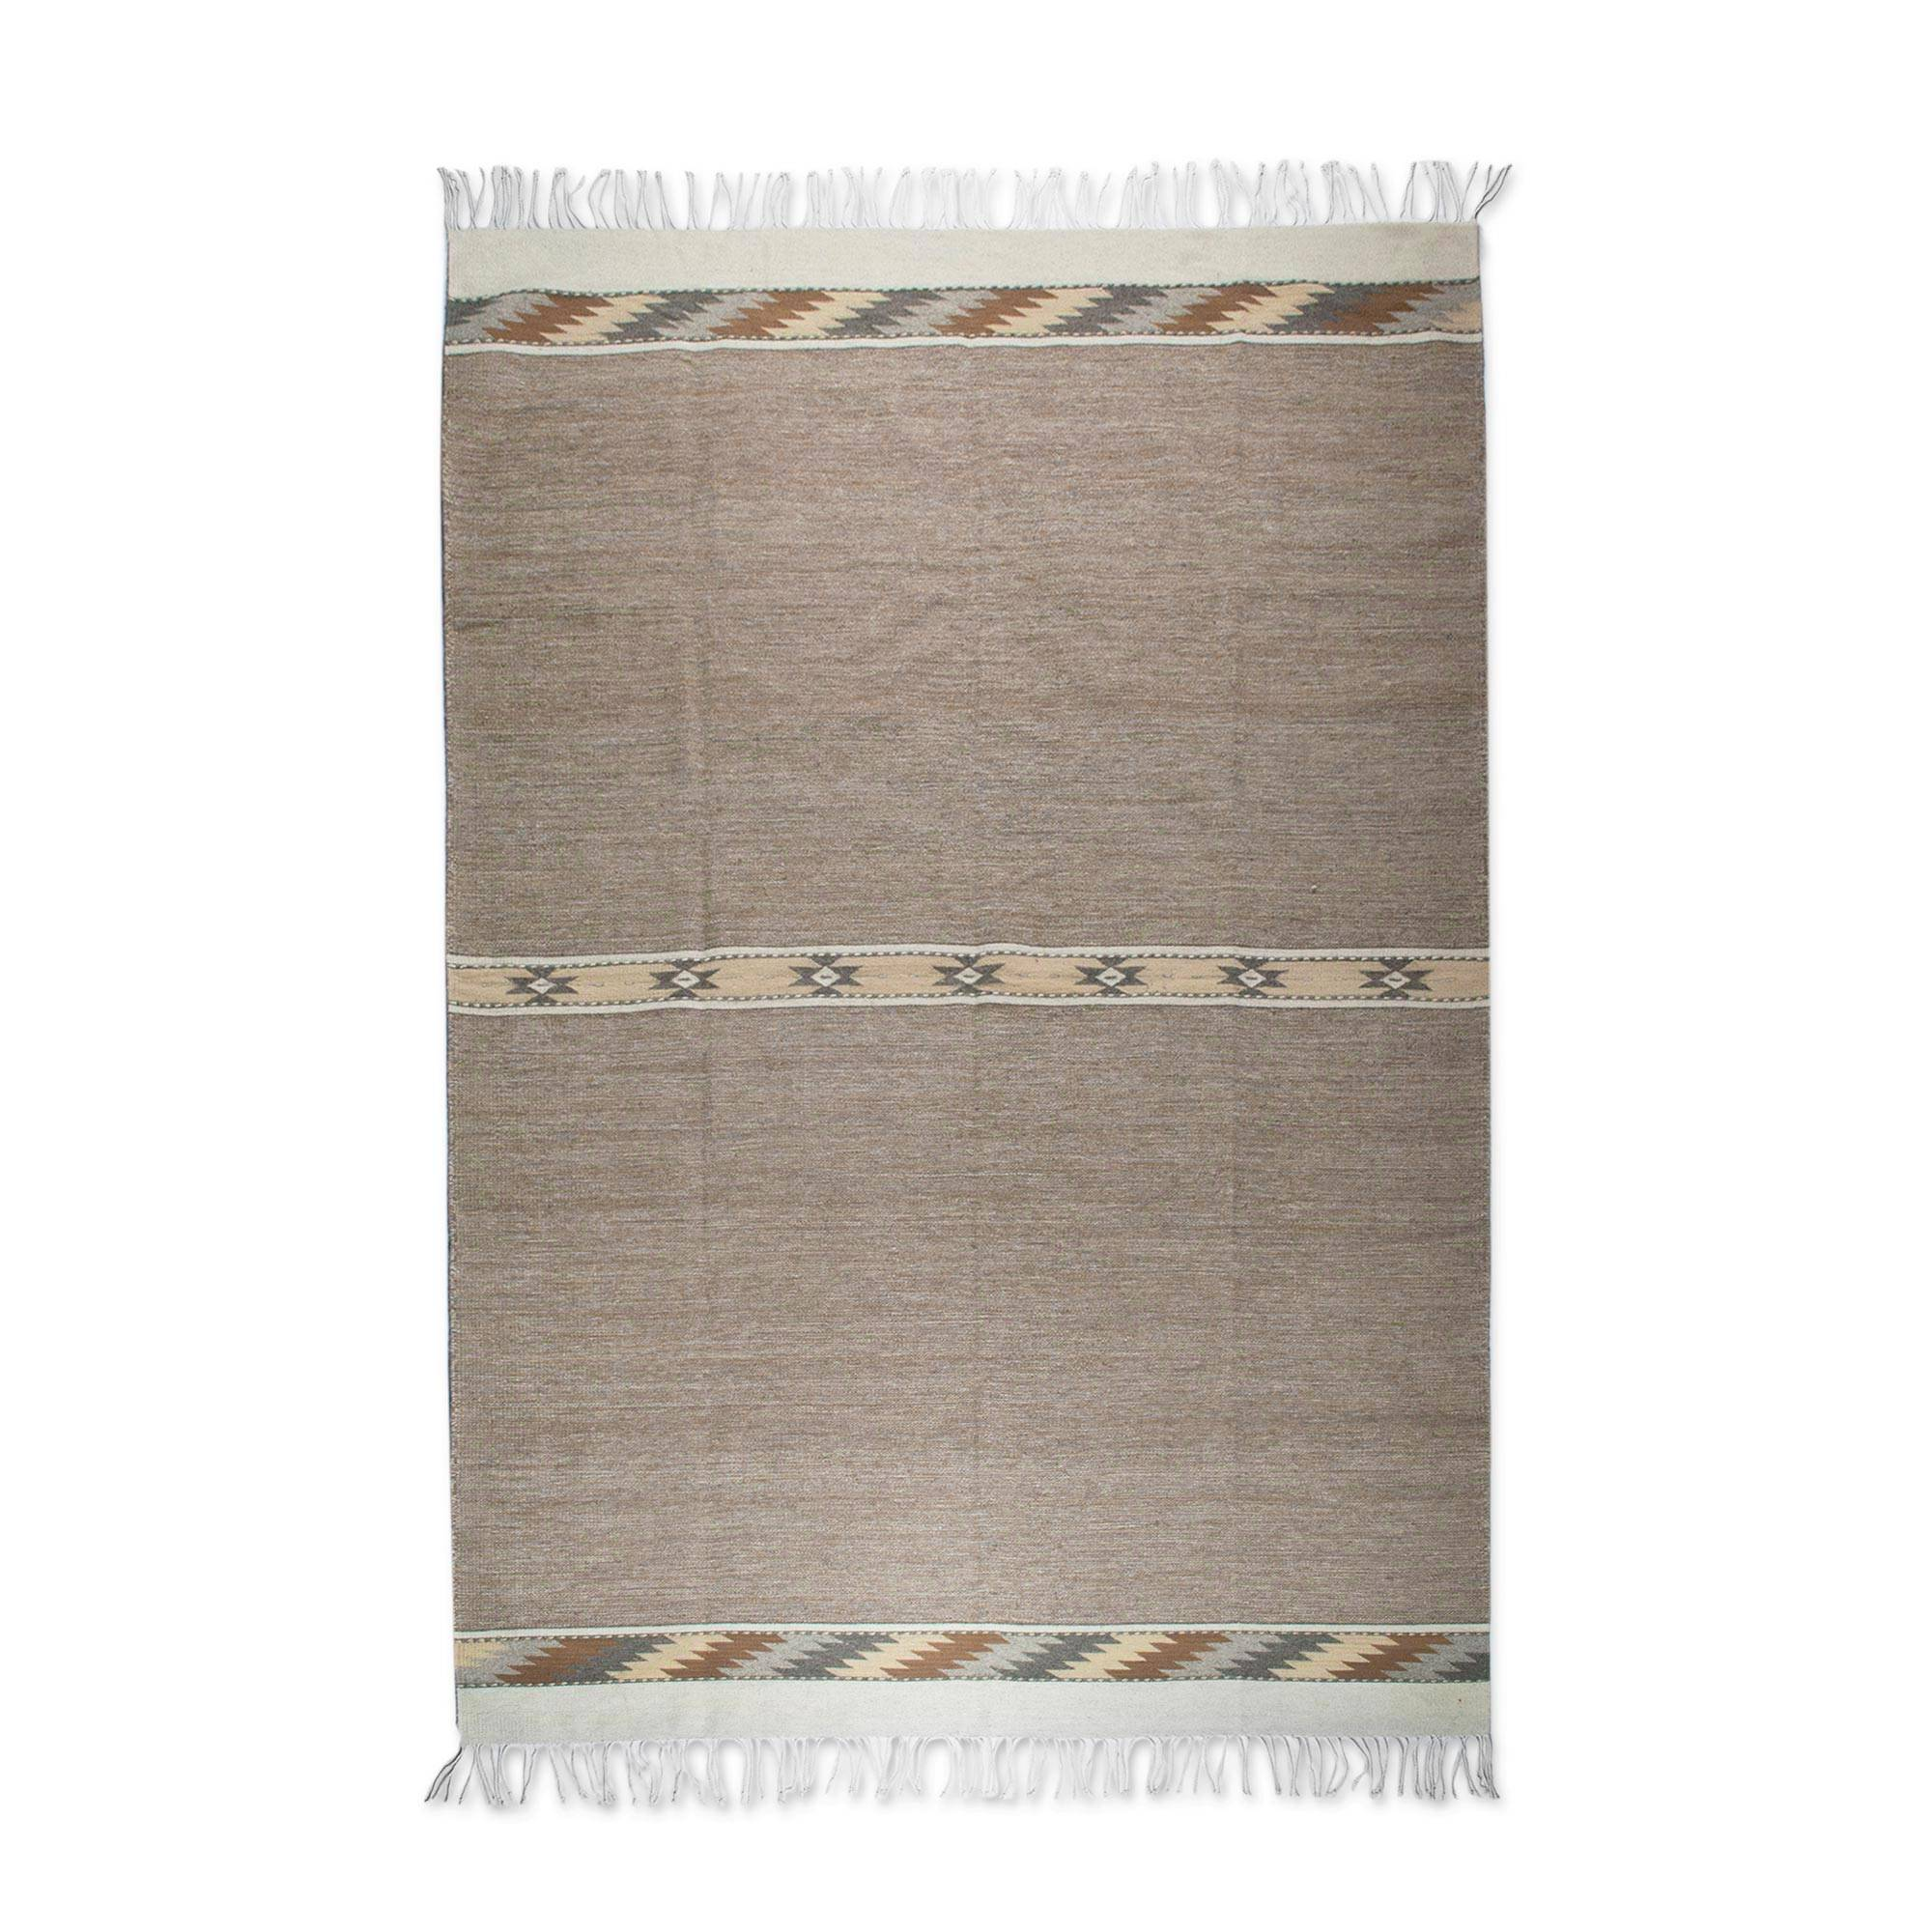 Handwoven Wool Area Rug In Ochre 6 5x10 From Mexico Land And